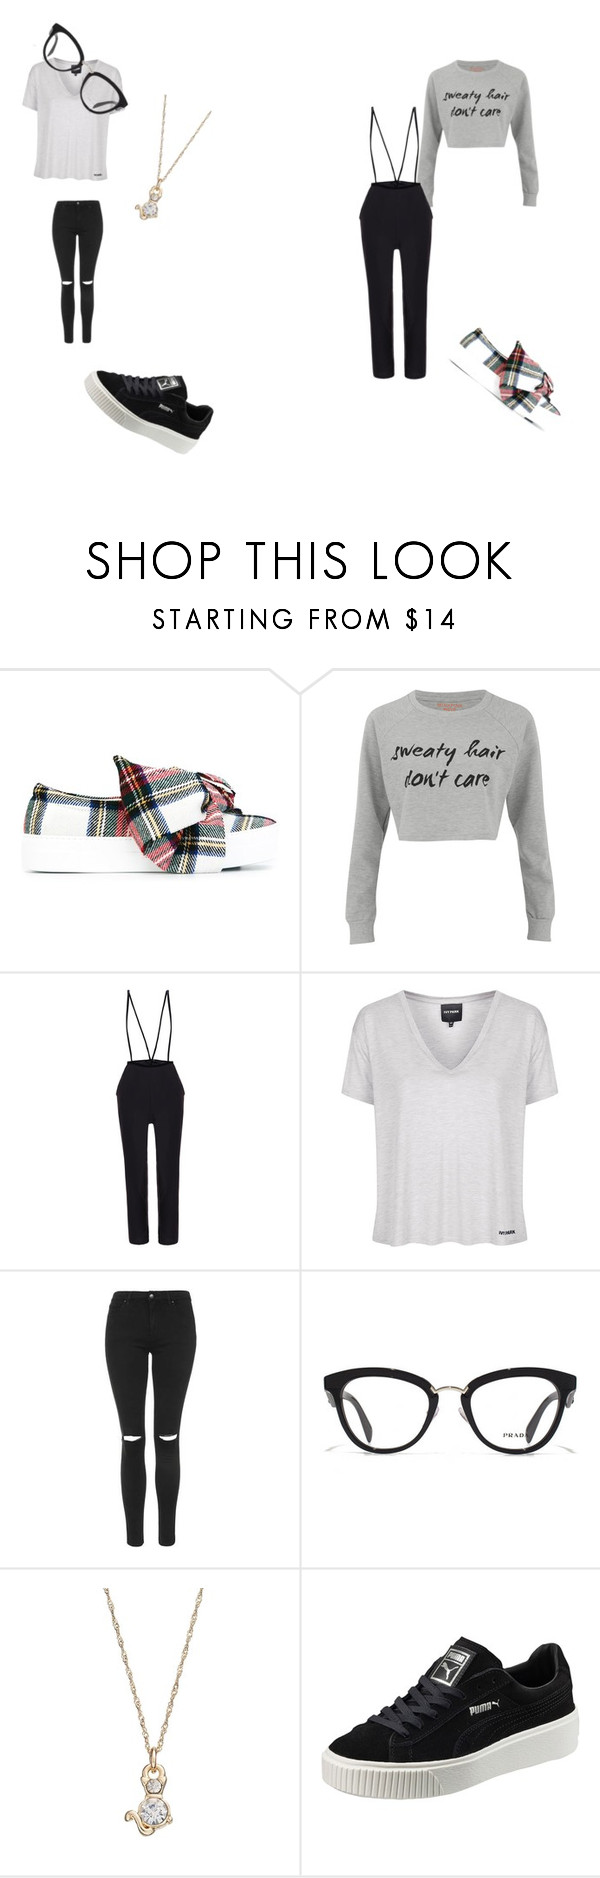 """""""Sweaty hair don't care"""" by meawmeawgirl ❤ liked on Polyvore featuring Joshua's, MINKPINK, Topshop, Prada, LC Lauren Conrad and Puma"""